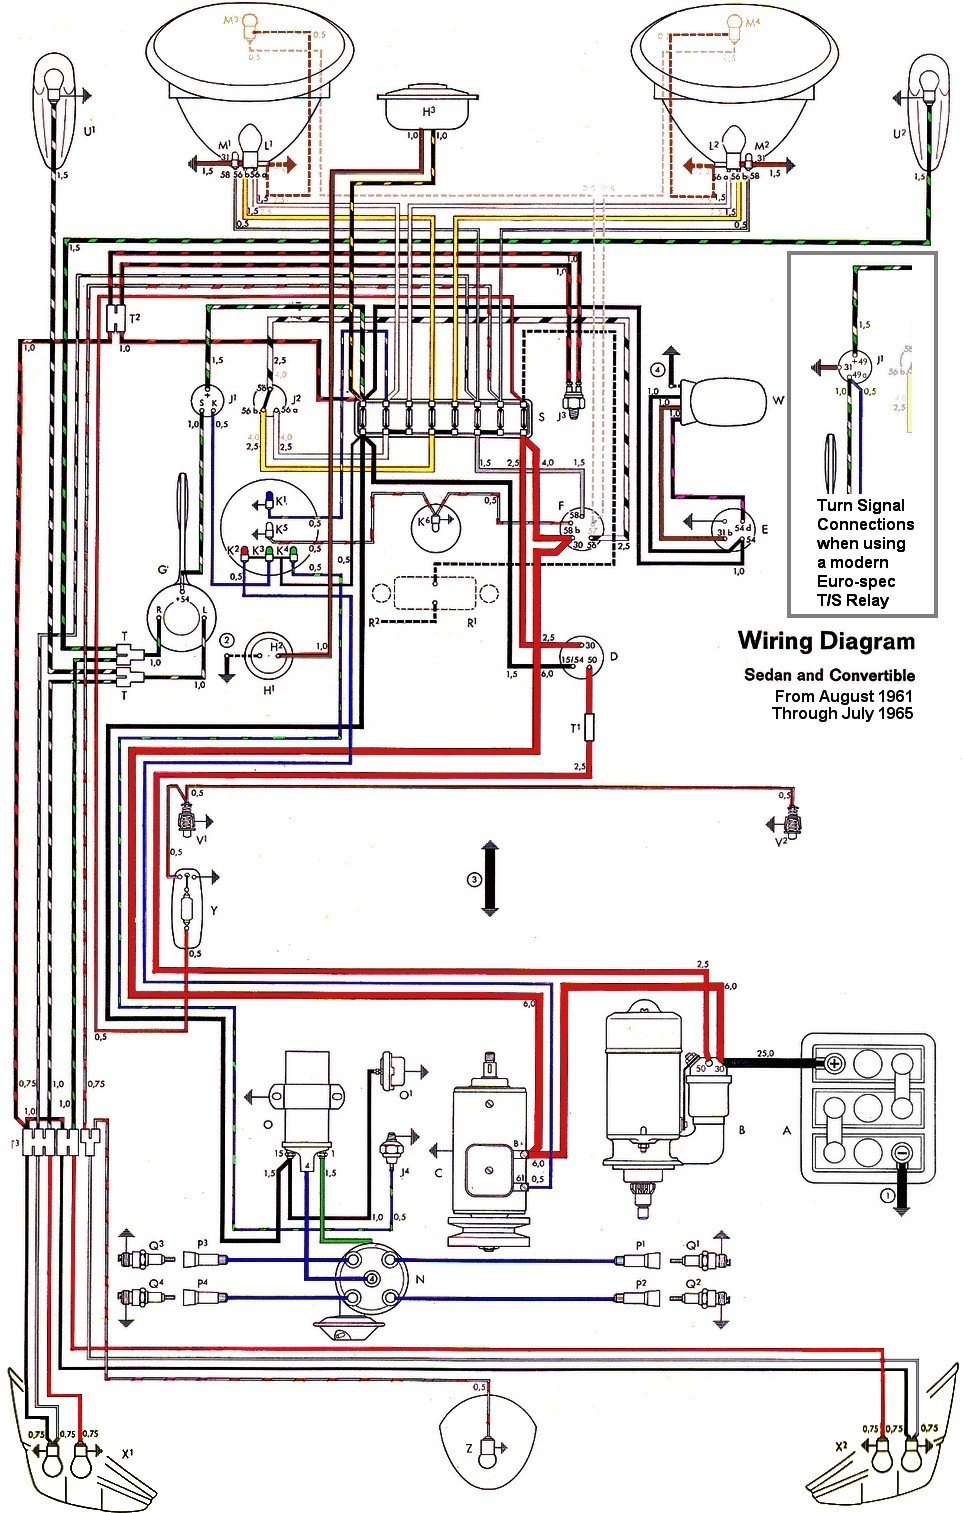 bug_62 65withinset vw bug turn signal wiring diagram vw beetle flasher relay wiring 1963 vw beetle wiring harness at panicattacktreatment.co